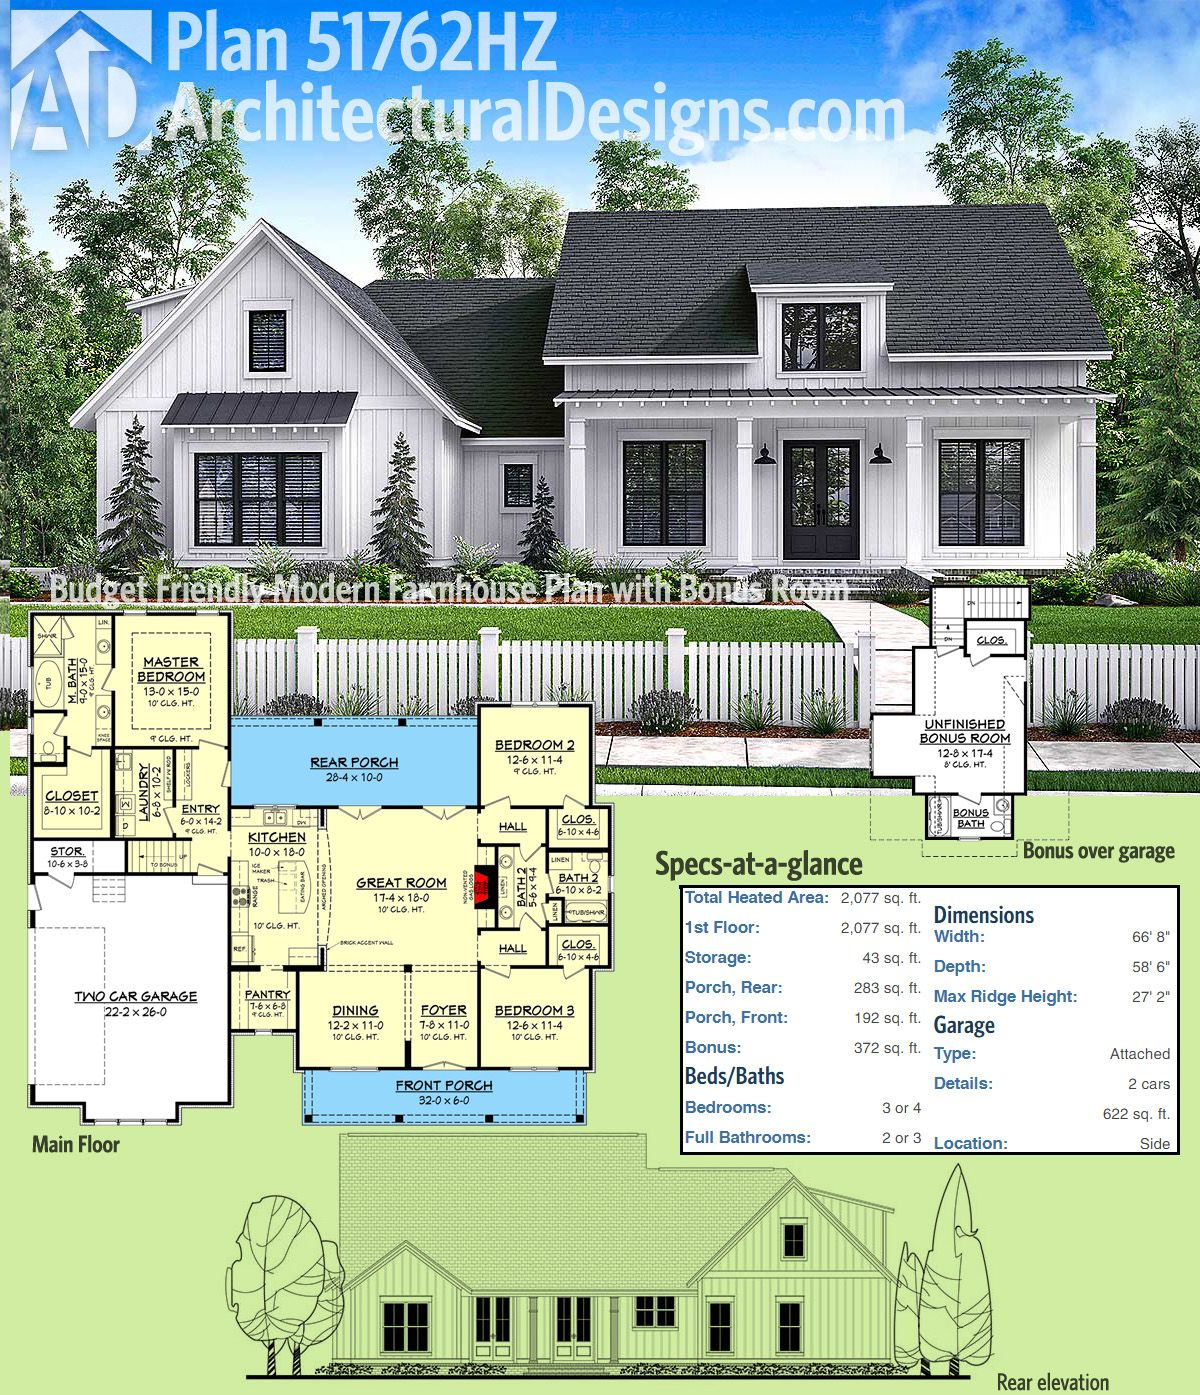 Plan 51762hz budget friendly modern farmhouse plan with for 1 story farmhouse floor plans